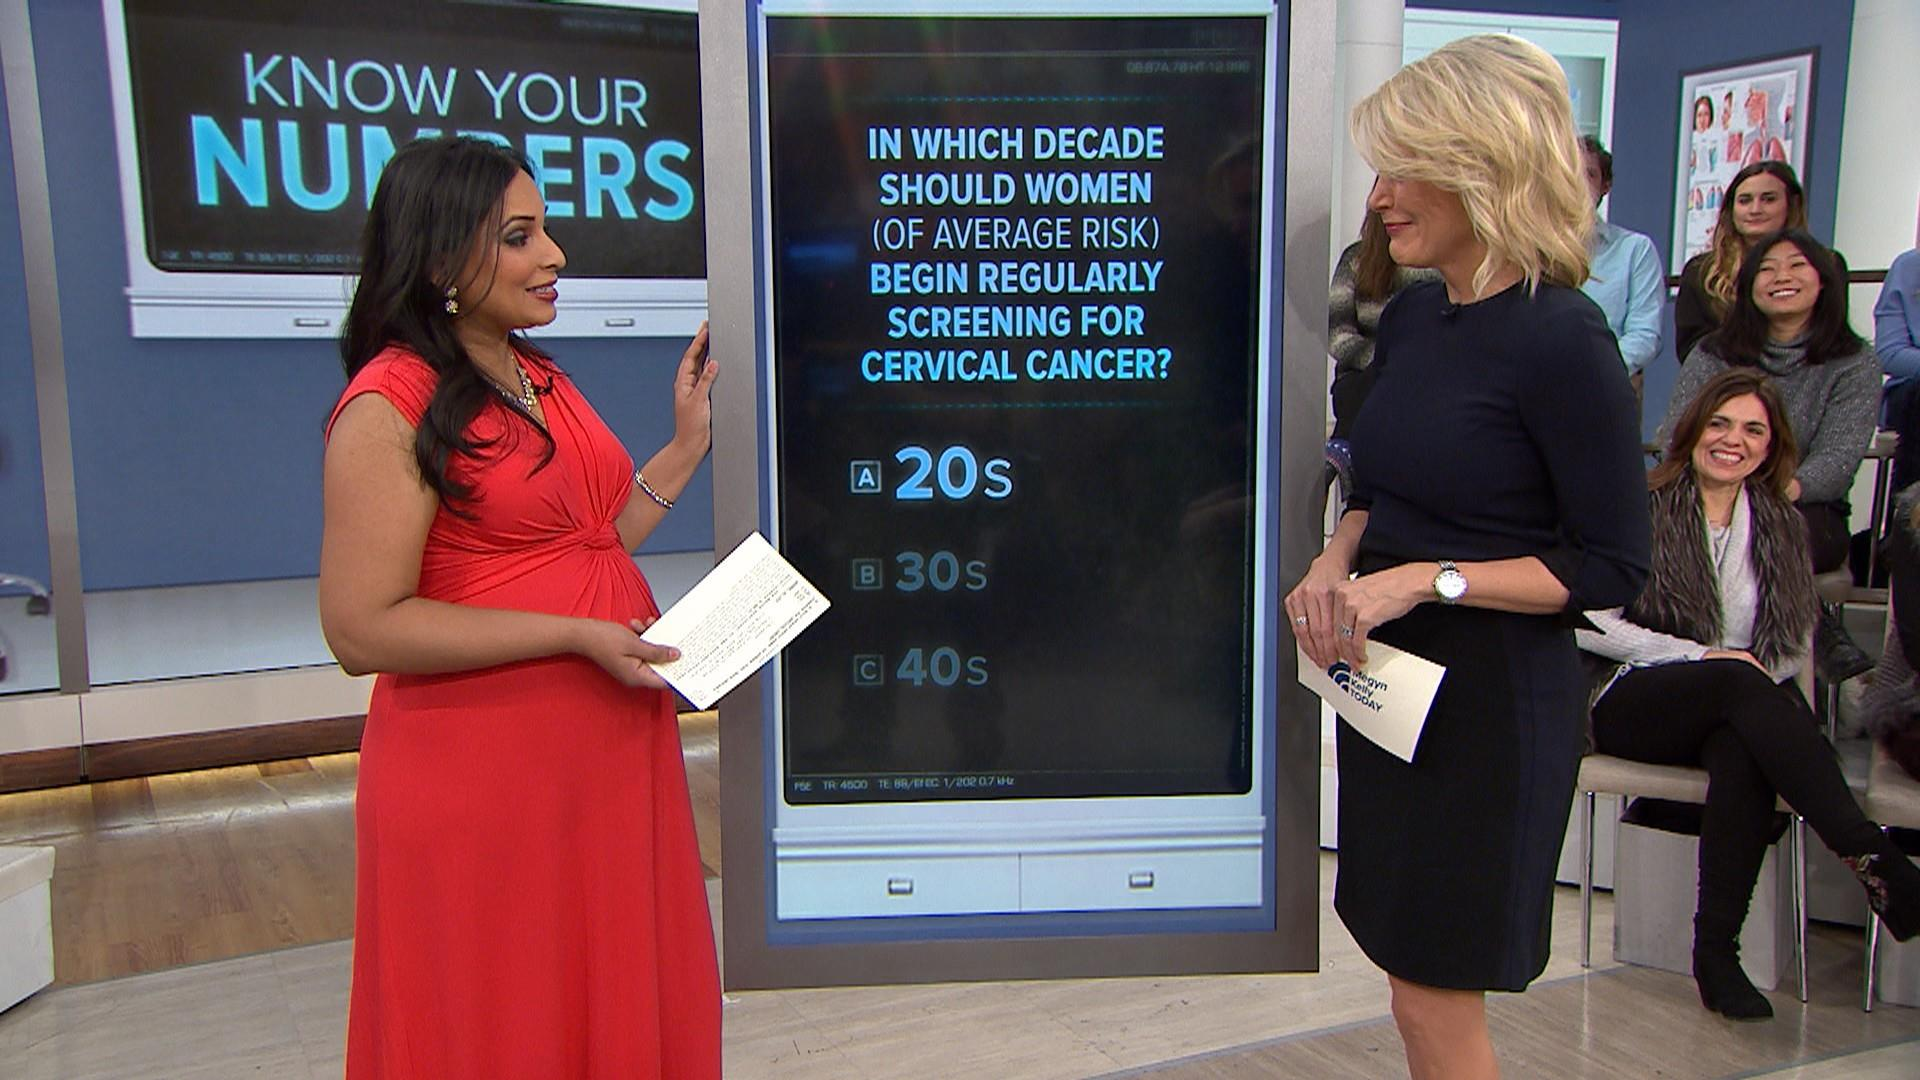 Why women may need cervical cancer screening even after age 65